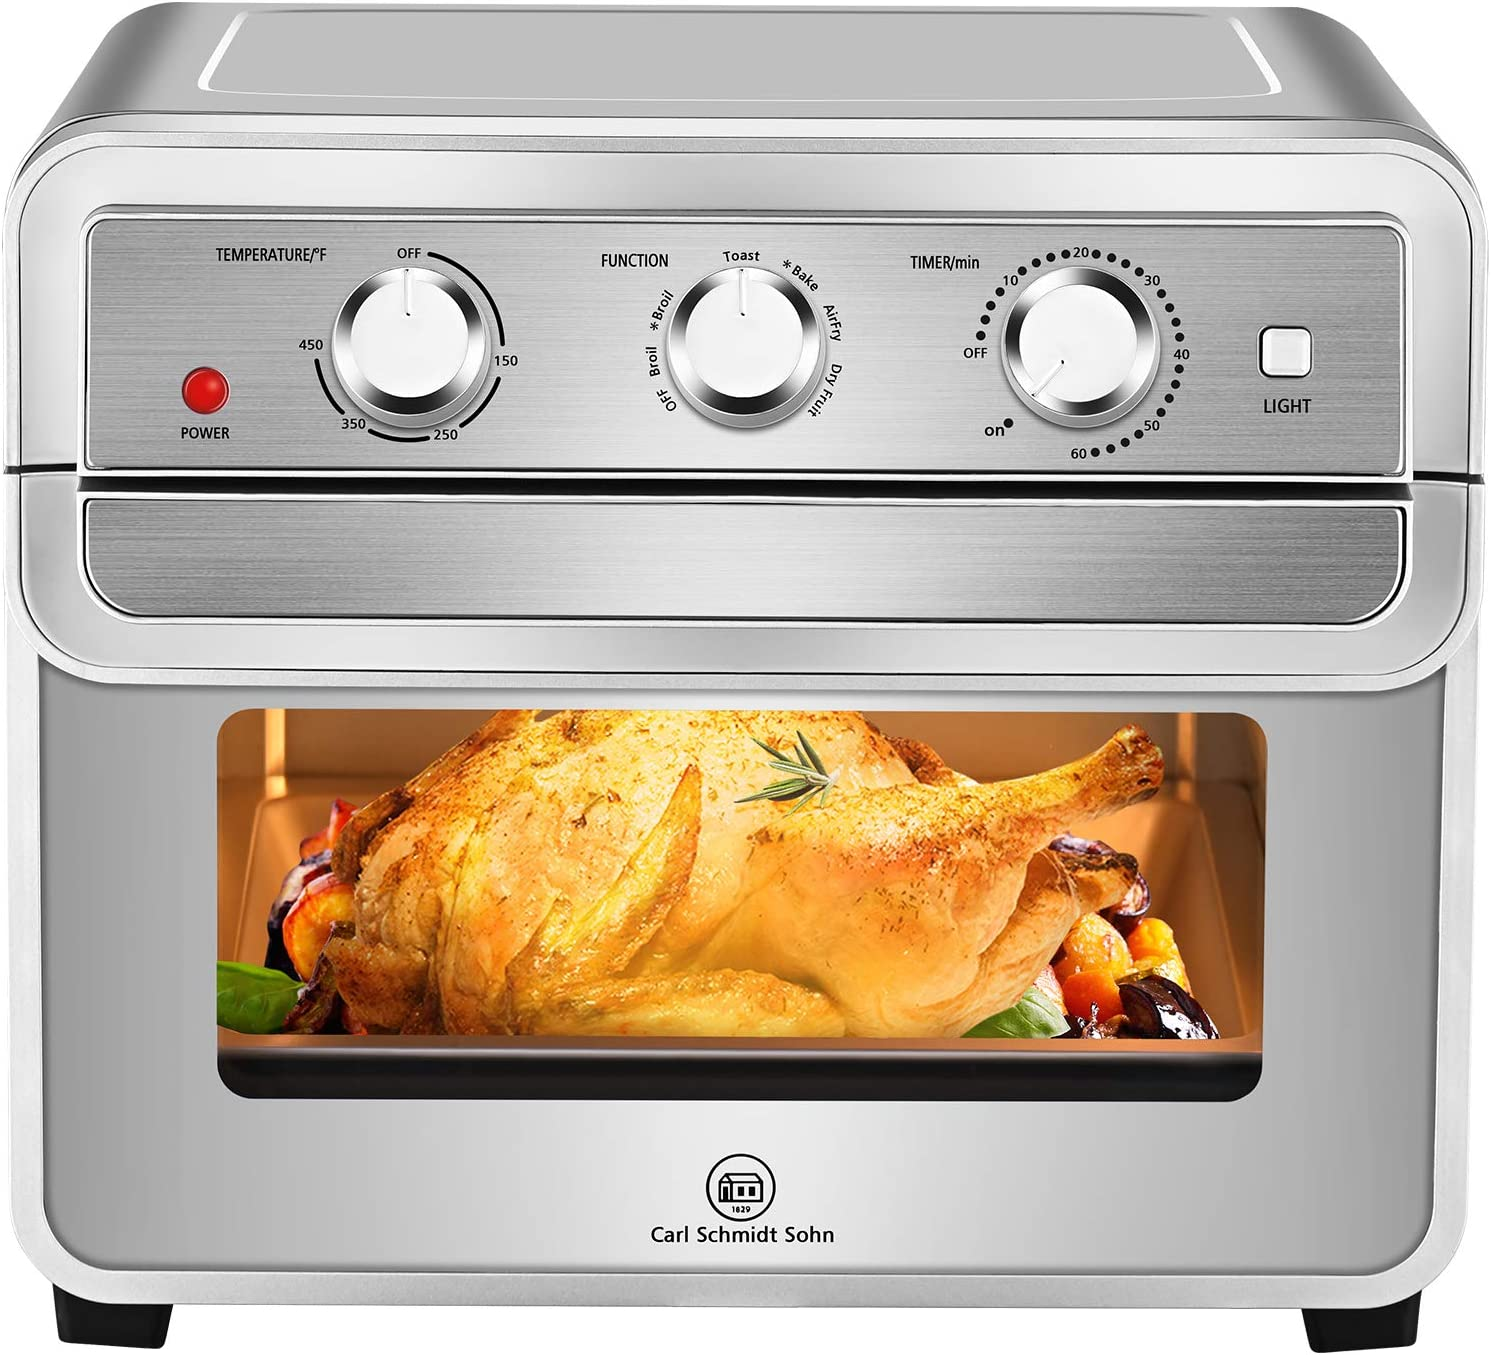 Air Fryer Oven -1829 CARL SCHMIDT SOHN6-in-1 Air Fryer Toaster Oven Combo, with Rotisserie Stainless Steel 23QT Large Capacity & 1700W, Included Toast/Bake/Broil/Air fry/Dried Fruit/Reheat, Sliver